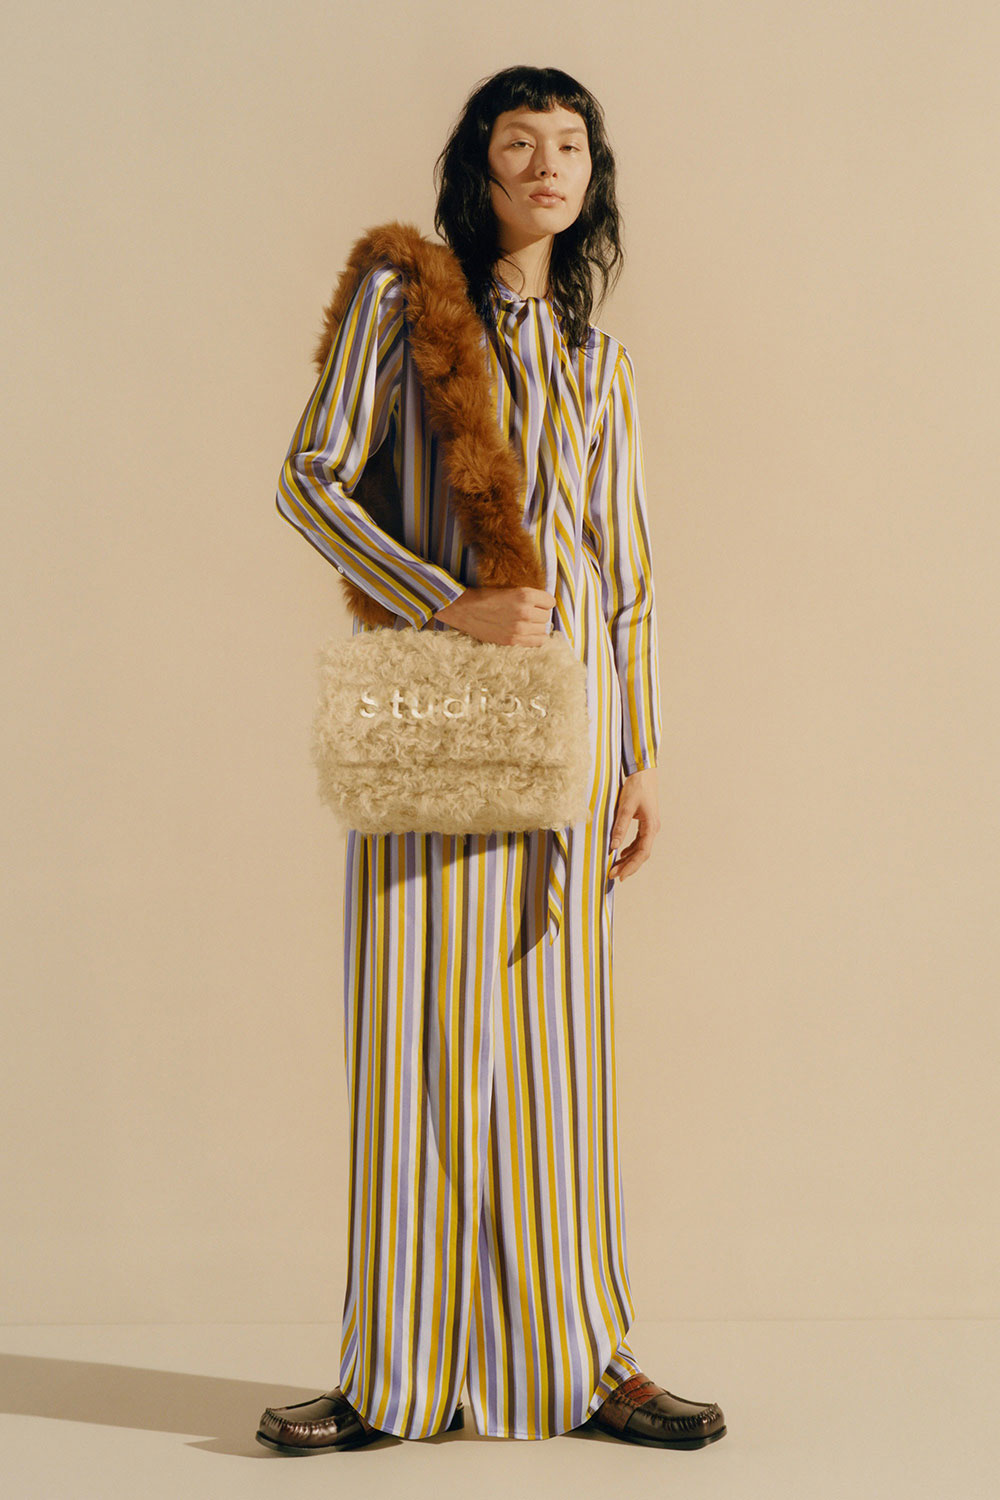 Acne-studios-pre-fall-17-lookbook-oracle-fox1